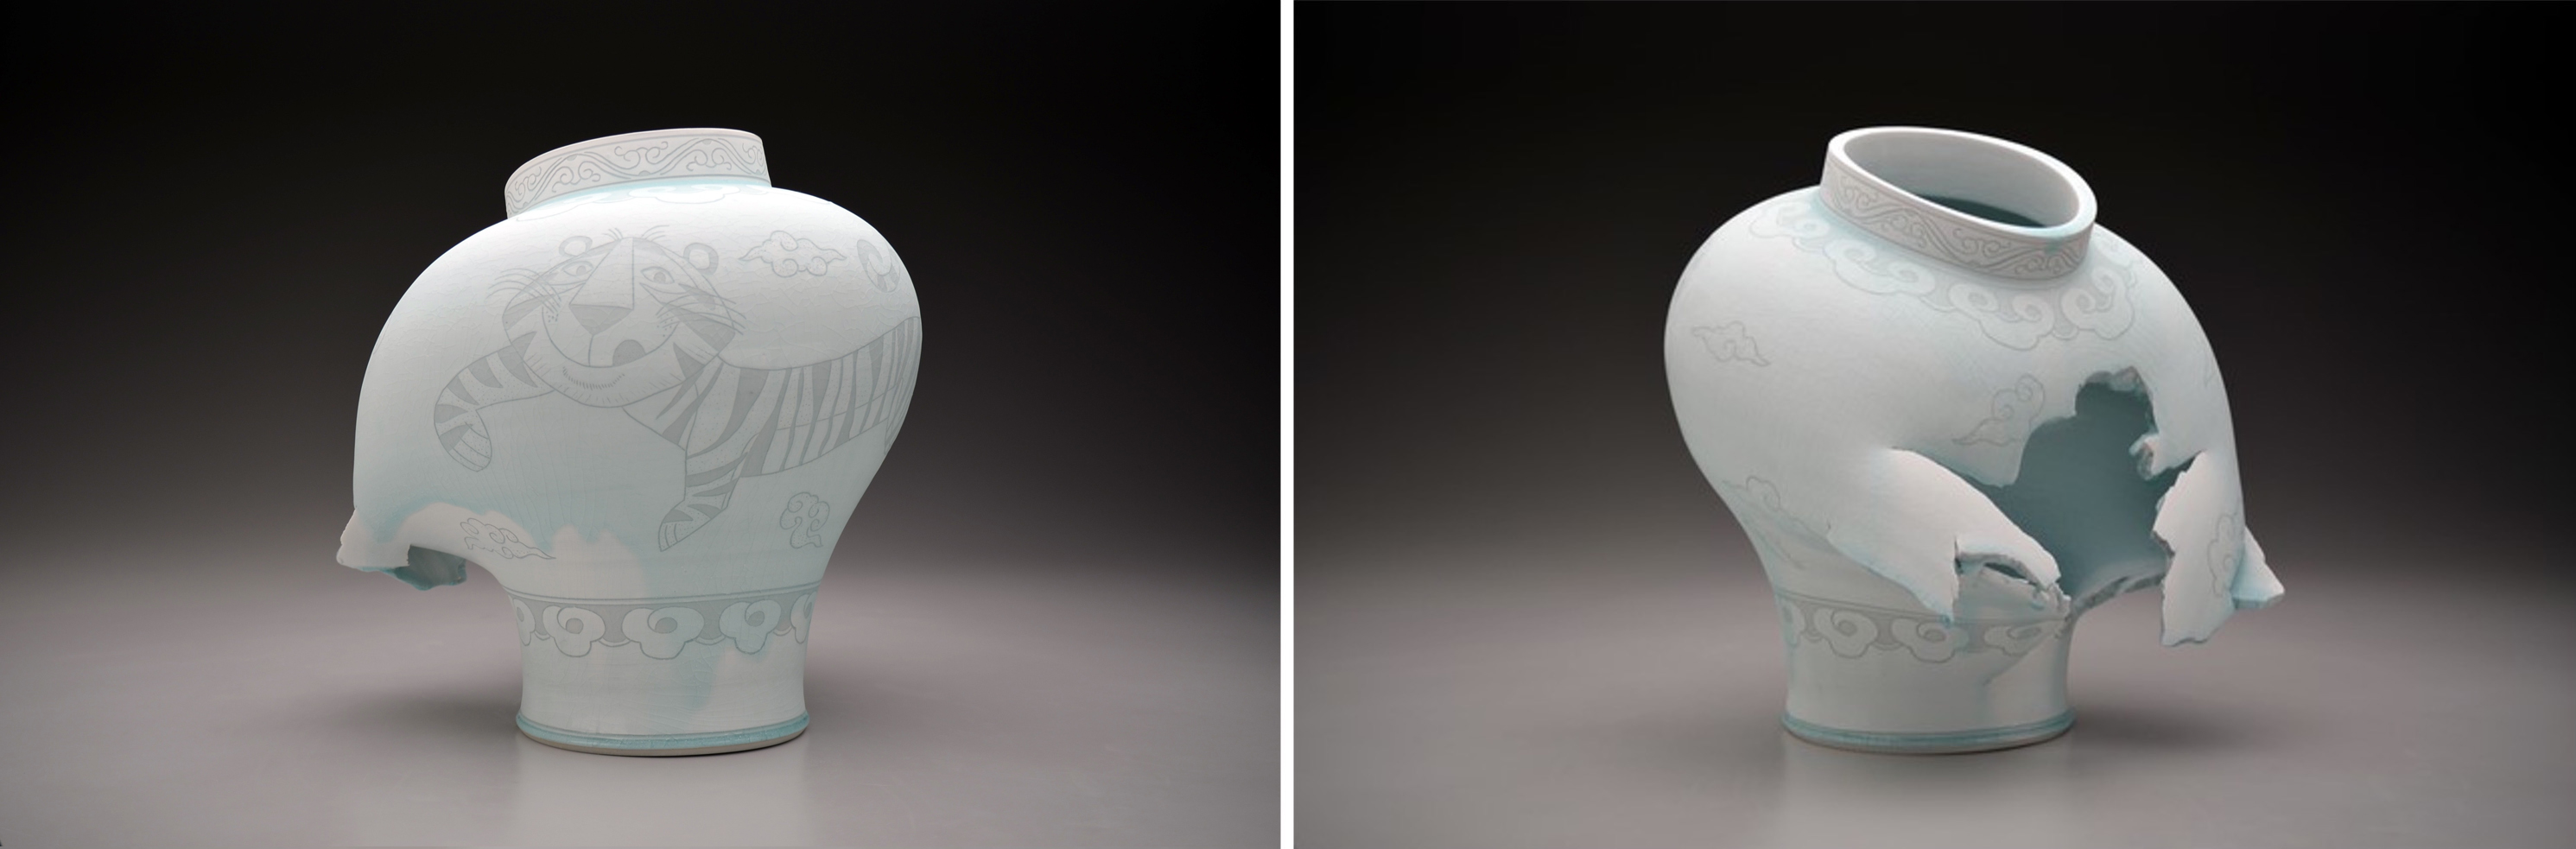 Two views of a ceramic jar with open side